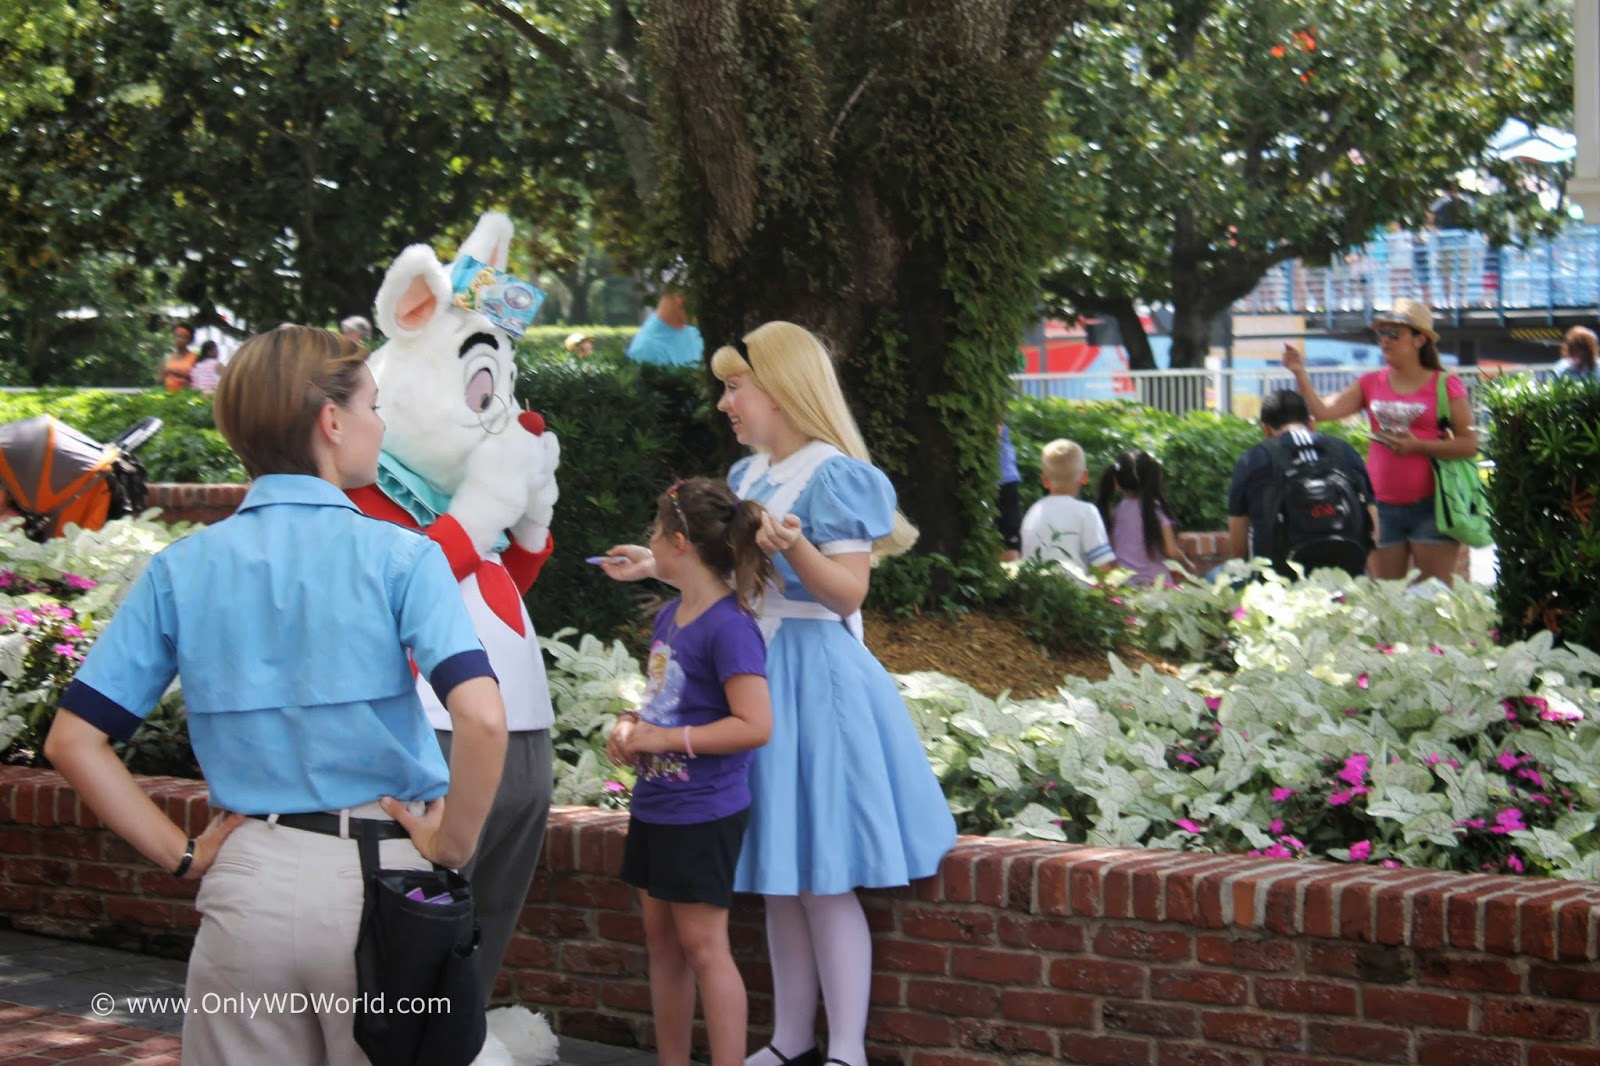 18 disney world character greetings that dont cost extra at the patio where you may get to meet peter pan he can often be found here meeting guests sometimes peter and wendy could be found meeting guests near peter kristyandbryce Image collections